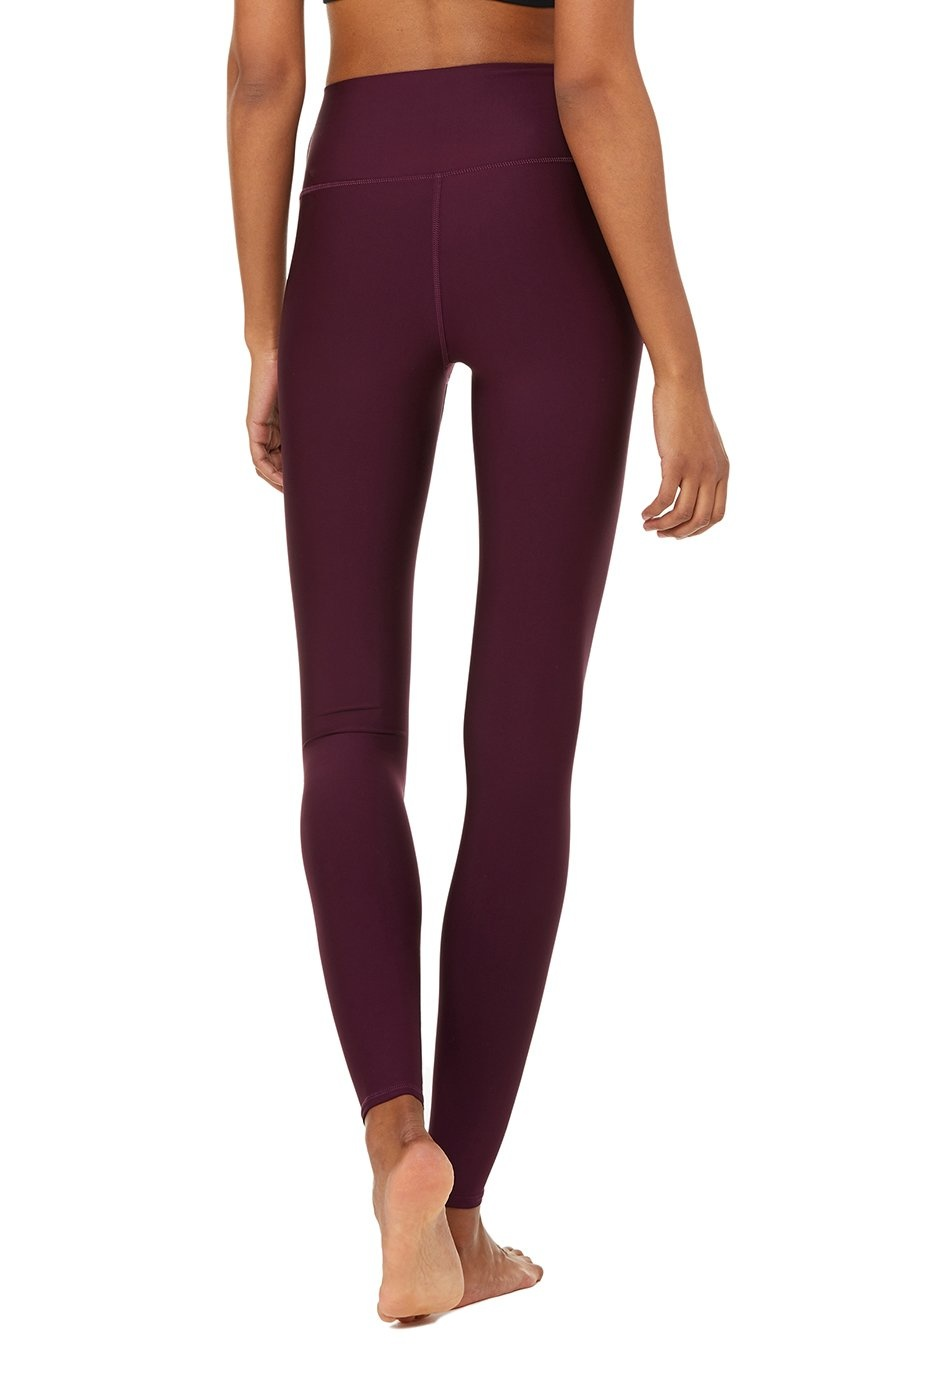 HW Airlift Legging Black Plum